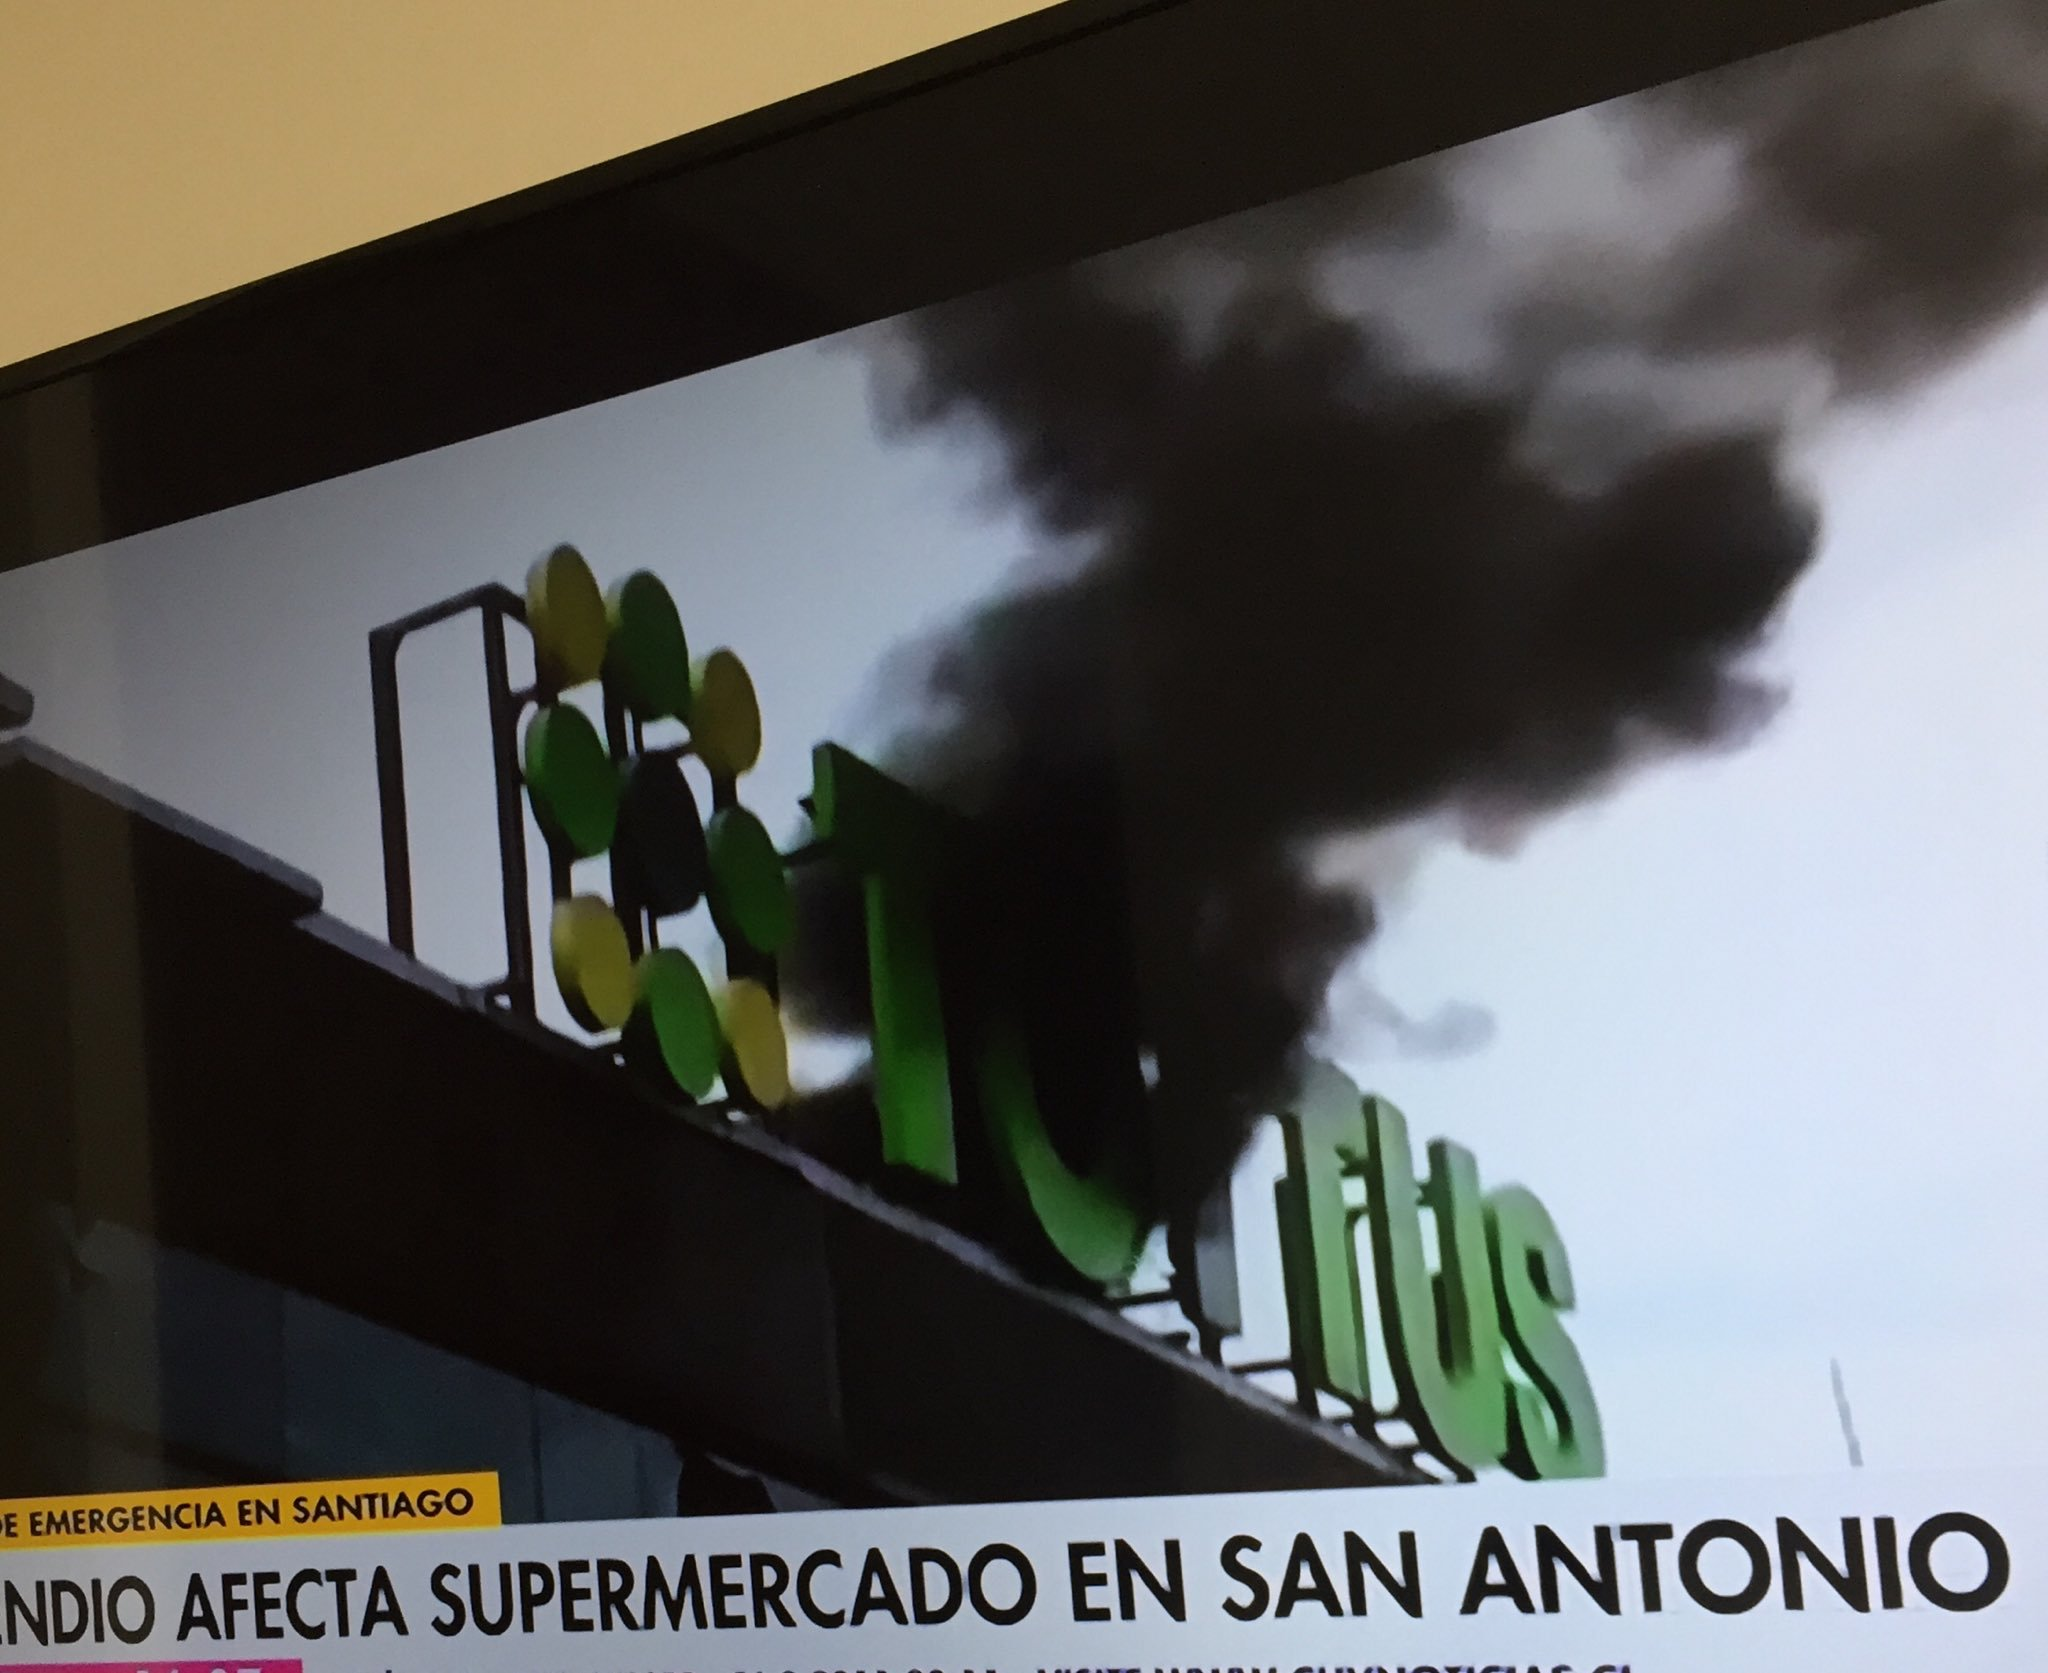 Video confirma que incendio de supermercado en San Antonio fue causado por Carabineros